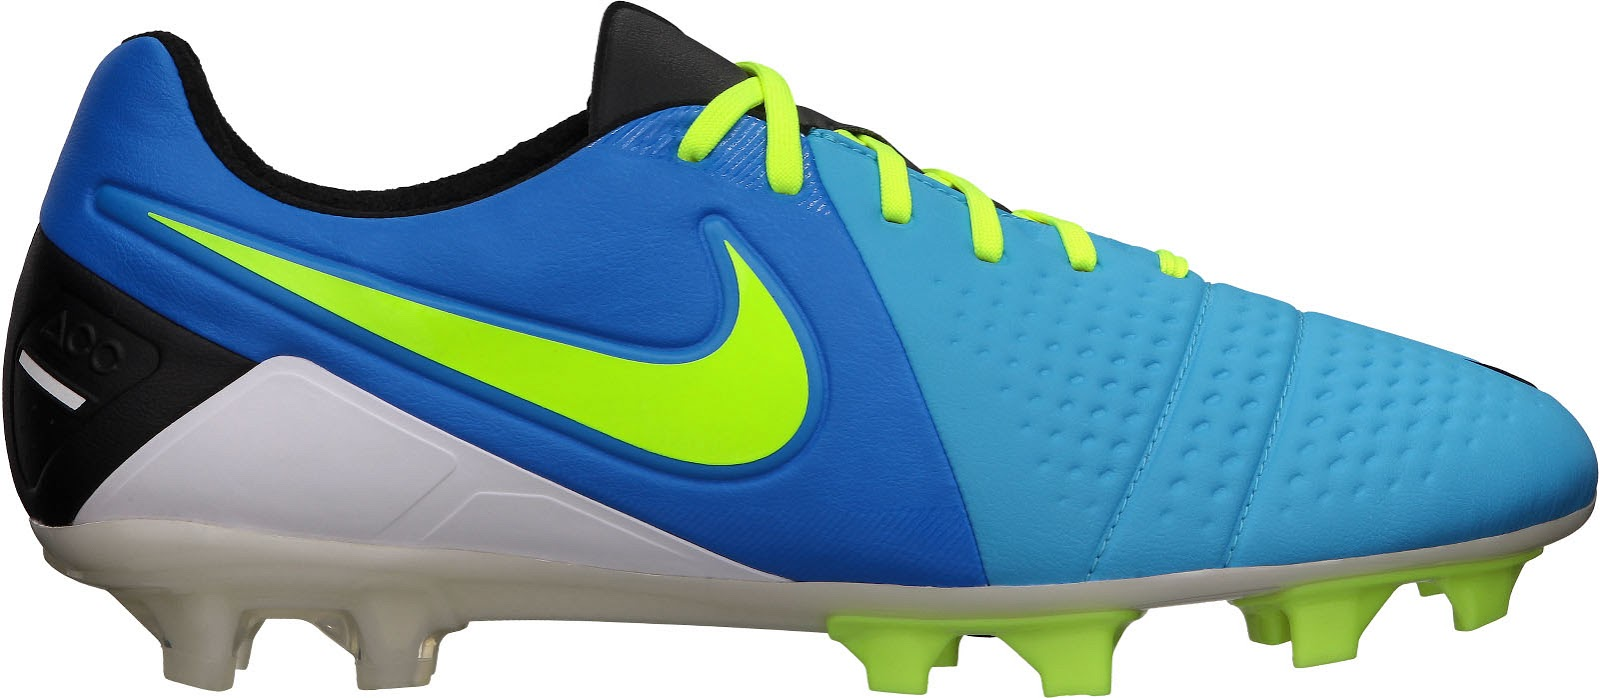 Nike Ctr Shoes